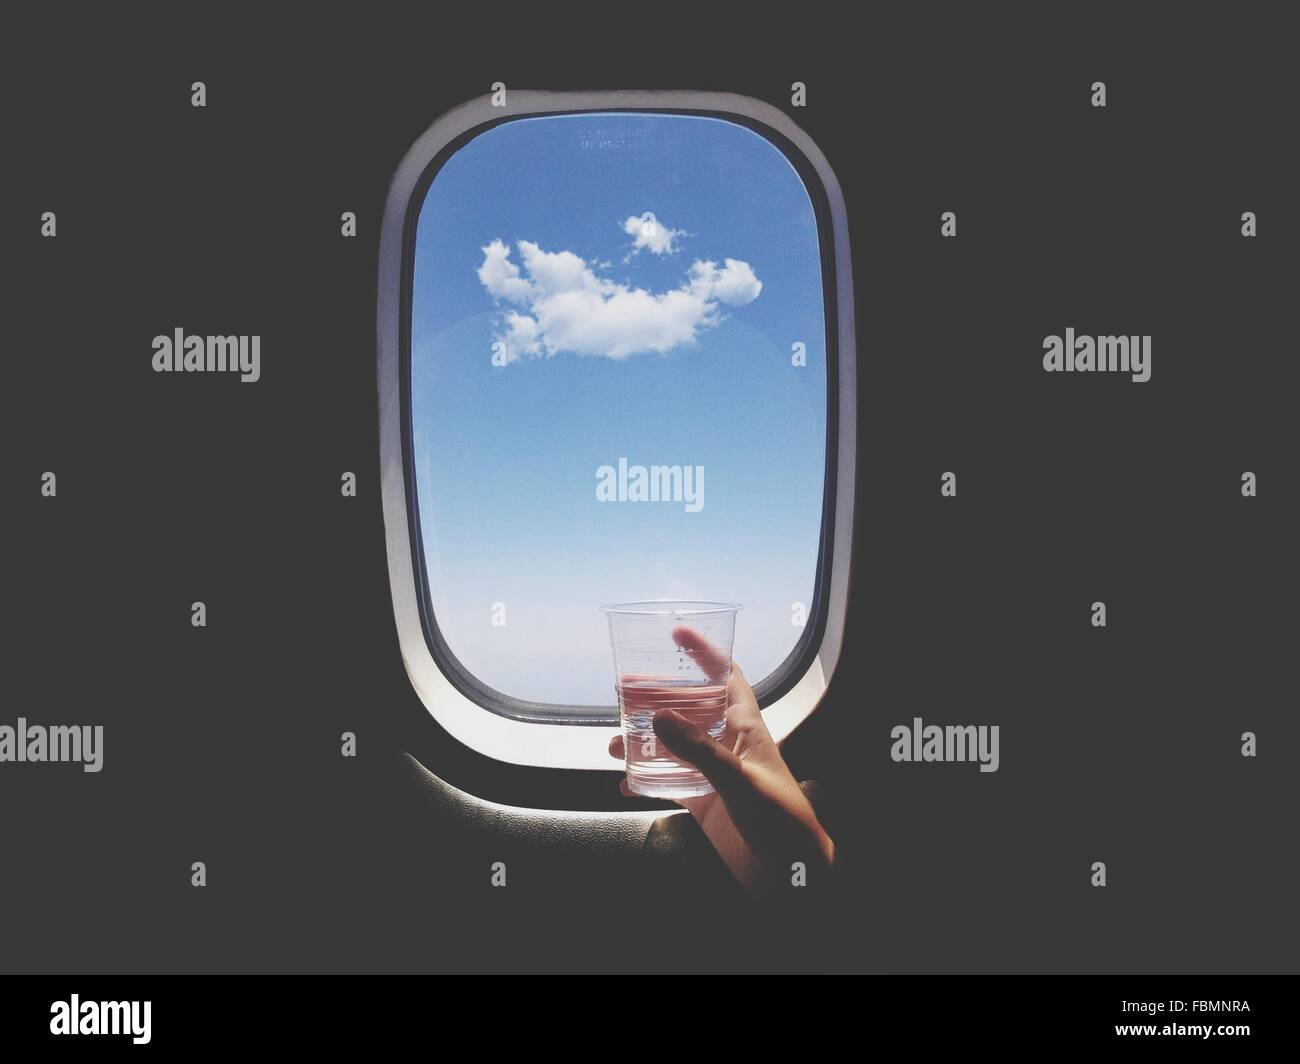 Close-Up Of Hand Holding Glass Of Water In Front Of Airplane Window - Stock Image